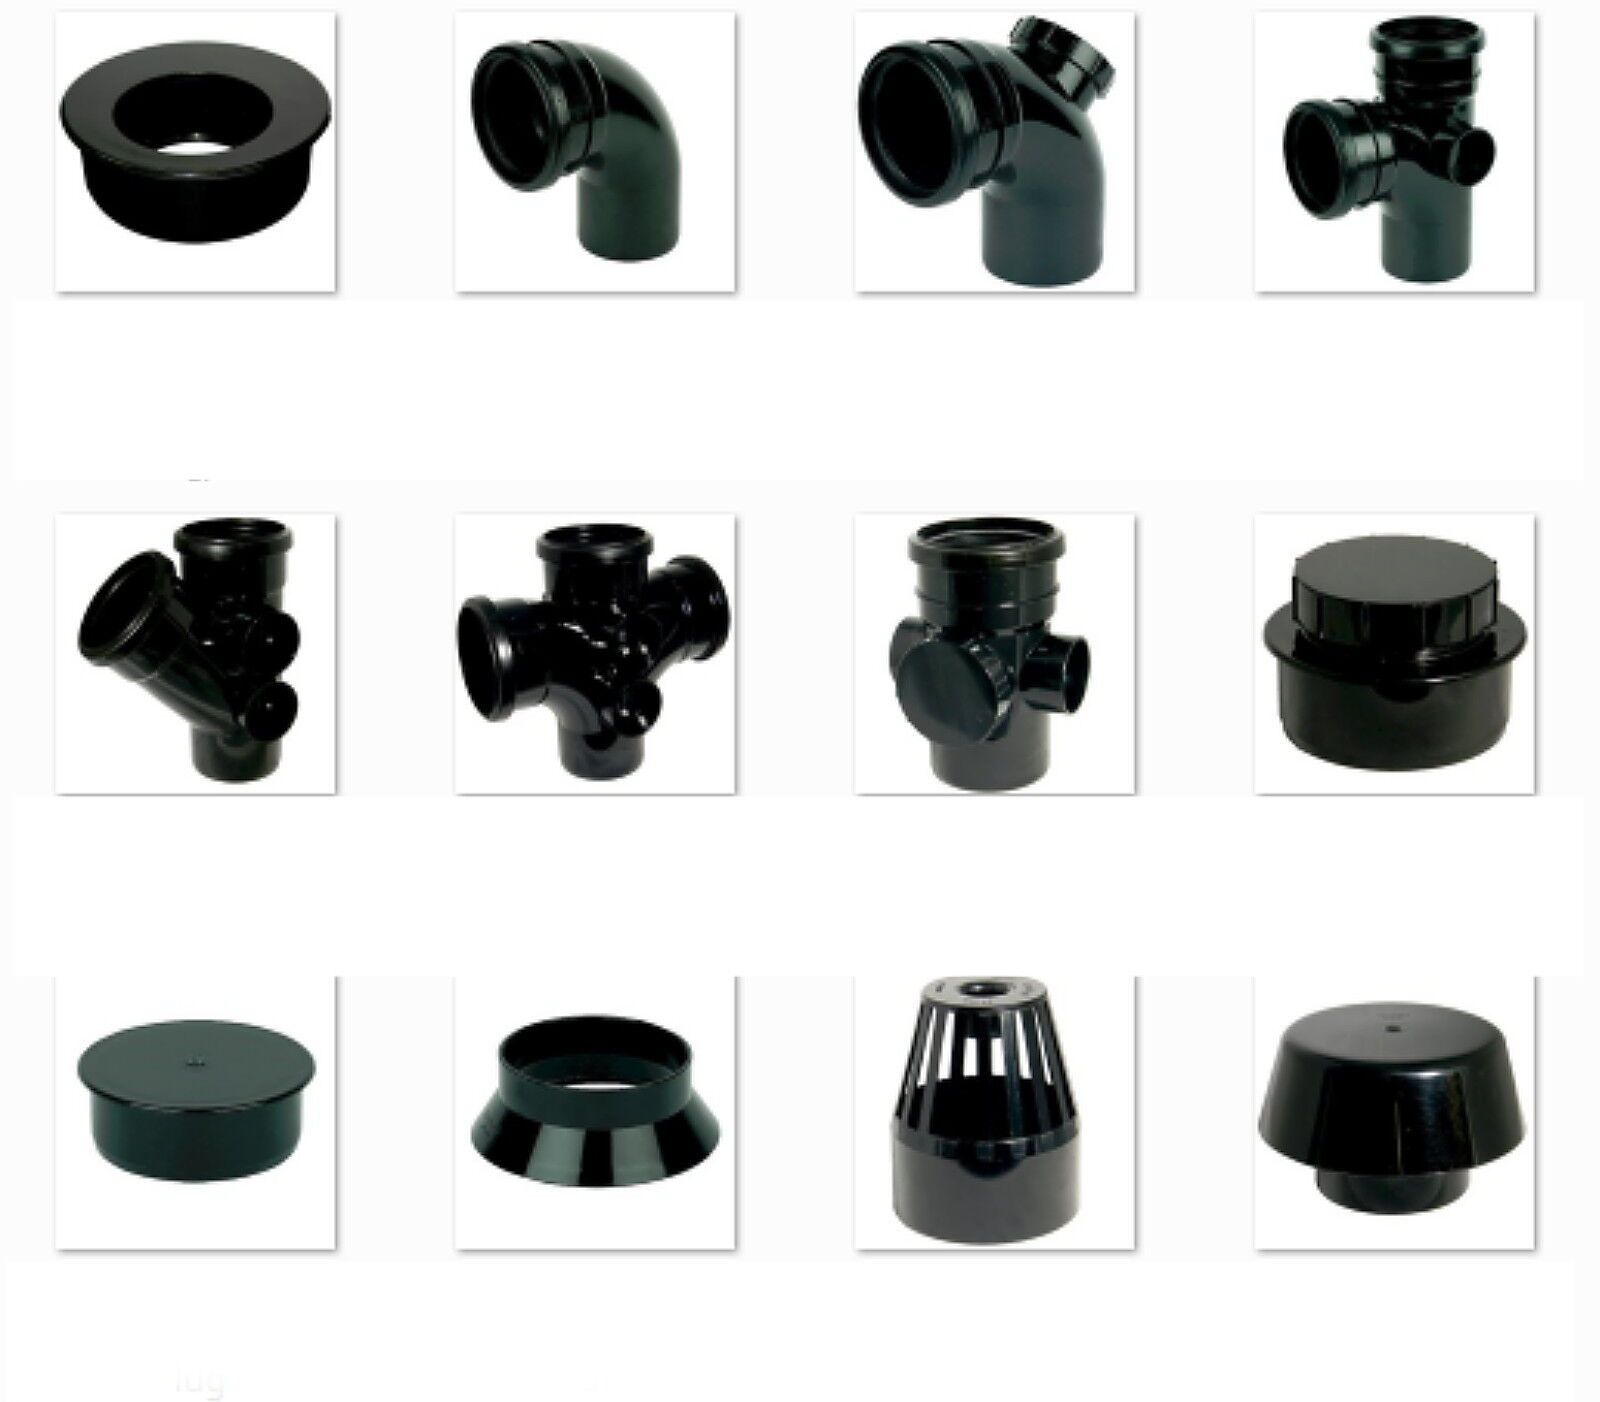 Black Soil Pipe And Ring Seal Fittings Upvc 110mm External